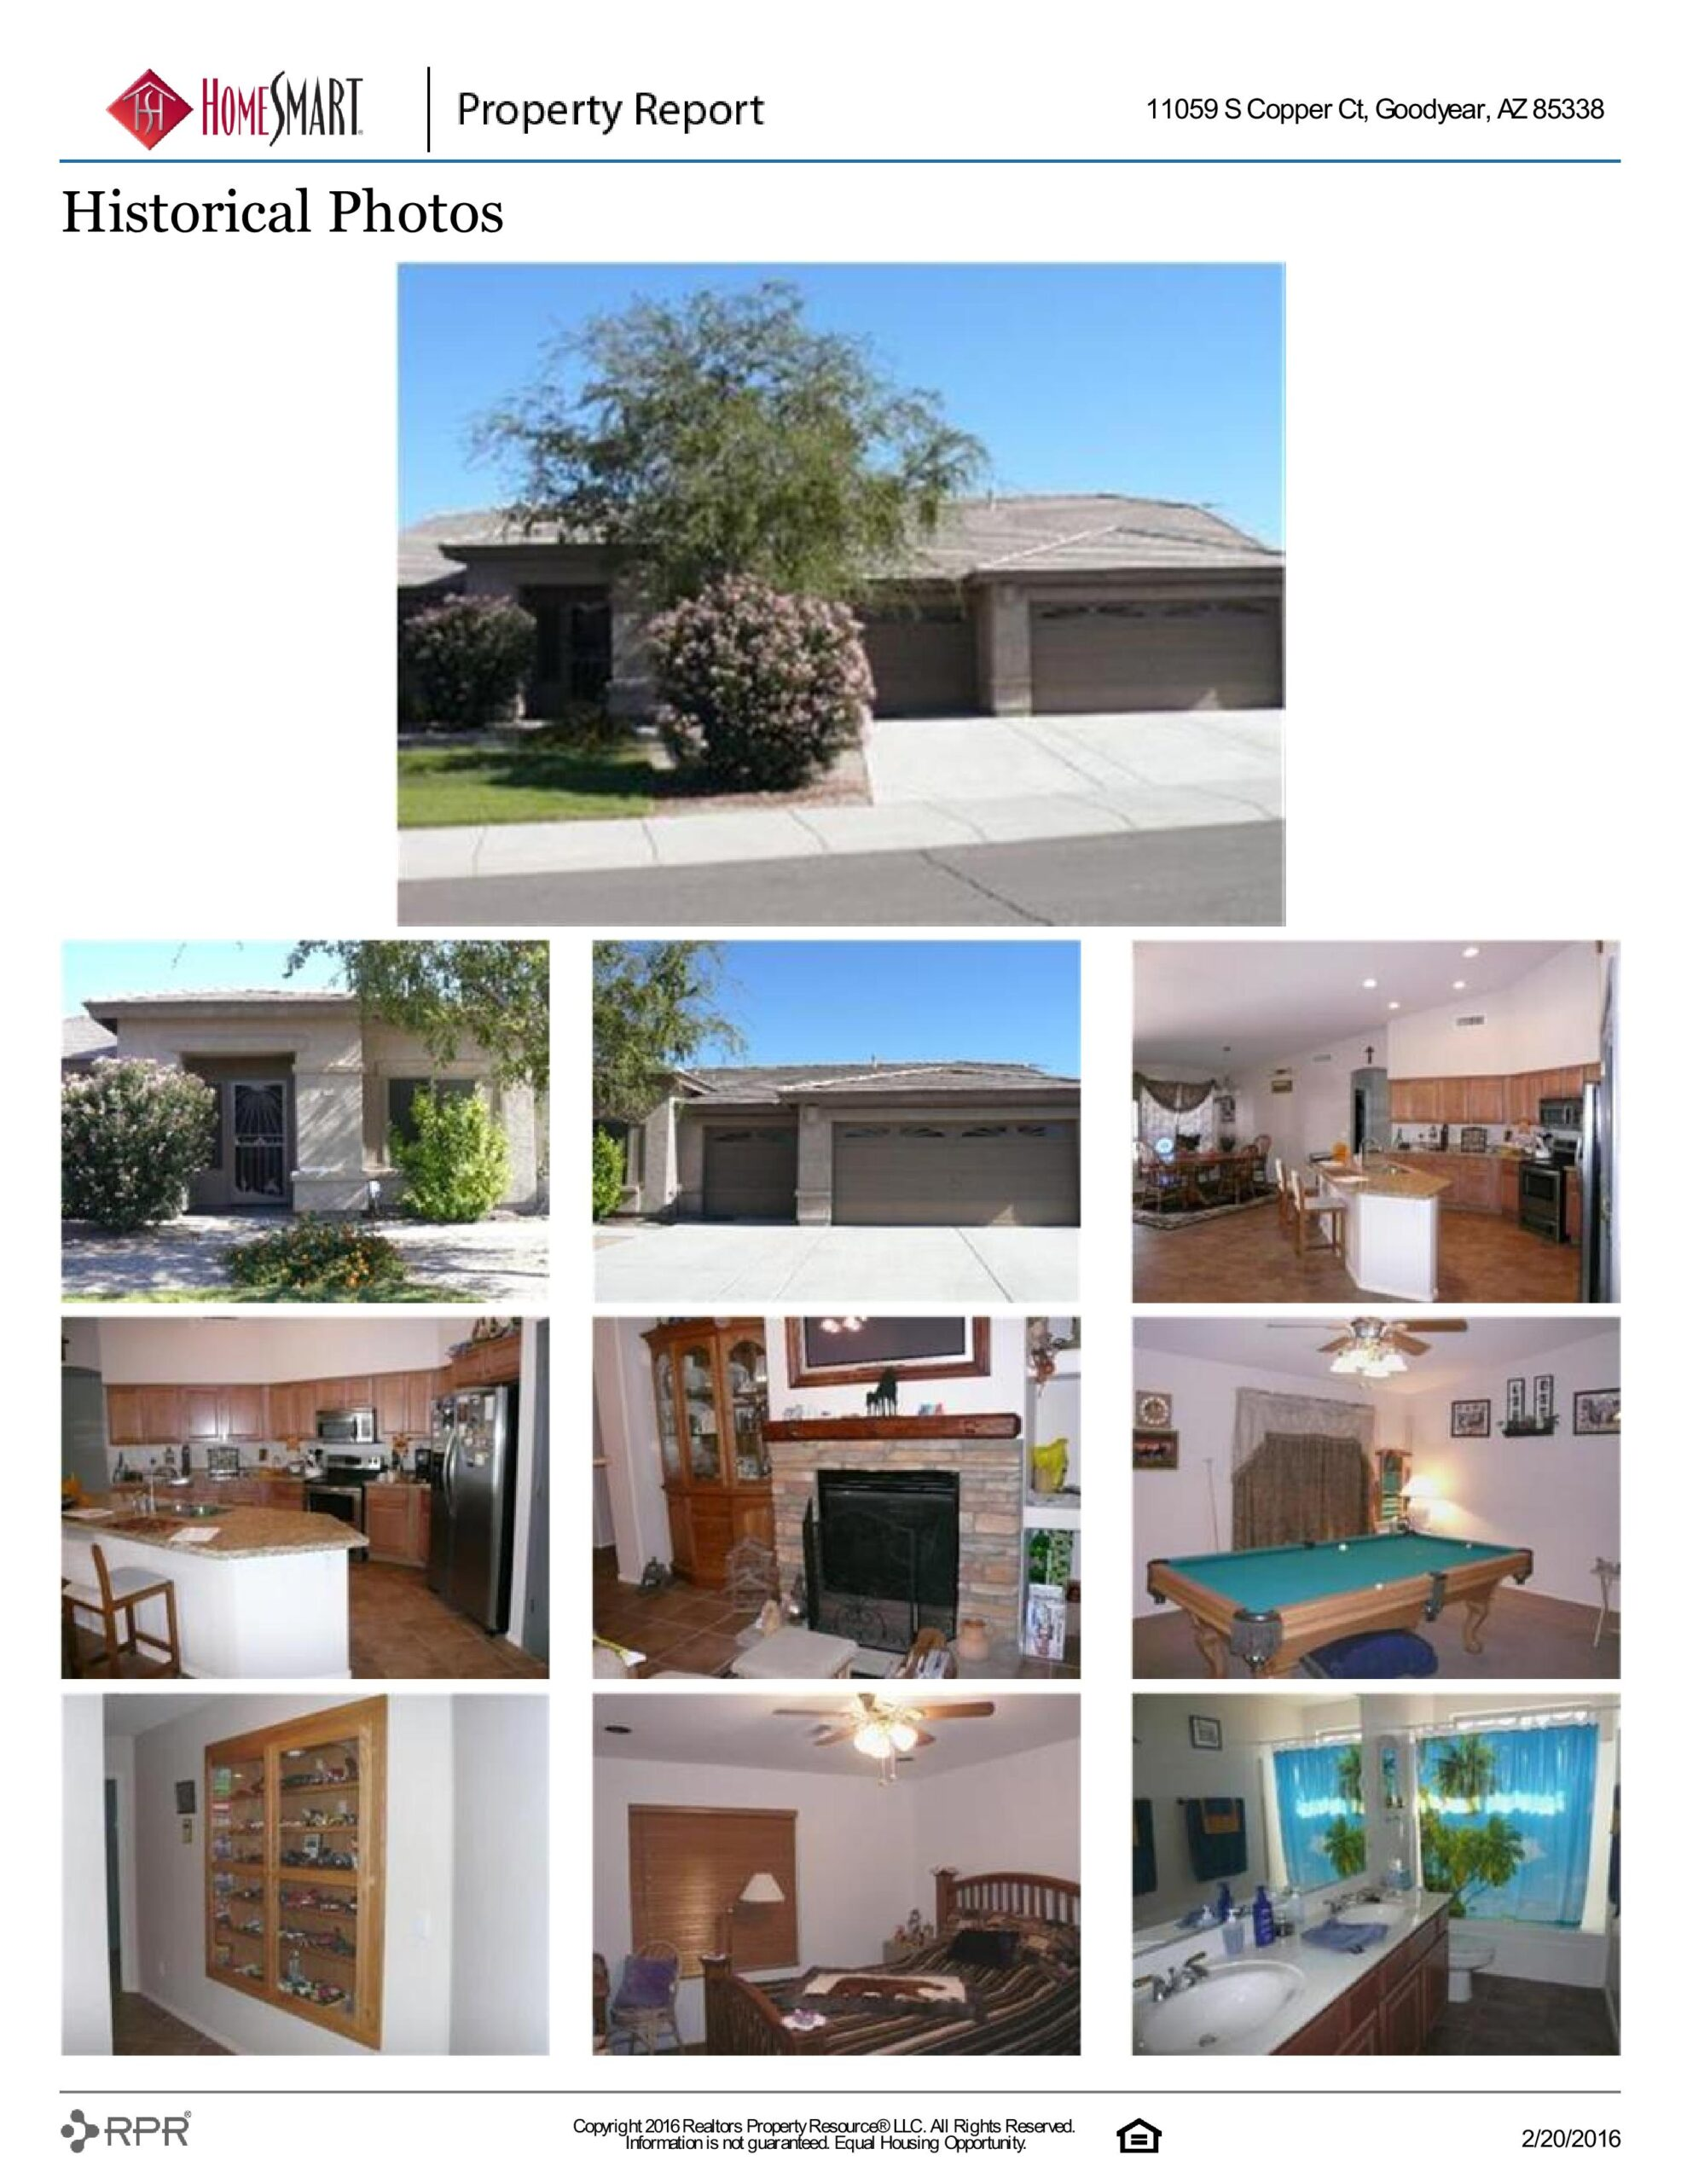 11059 S COPPER CT PROPERTY REPORT-page-008